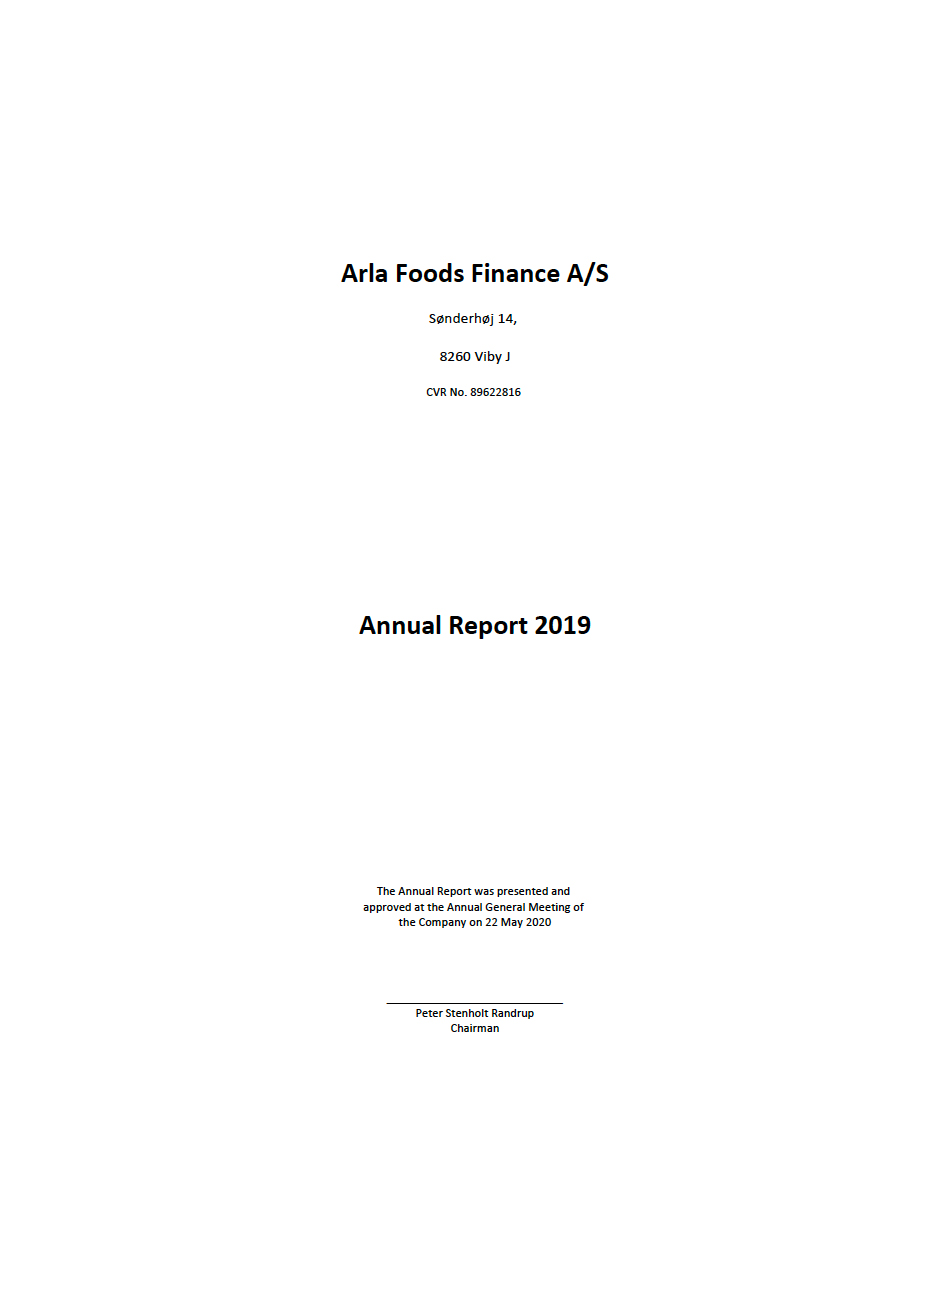 Arla Foods Finance A/S 2019